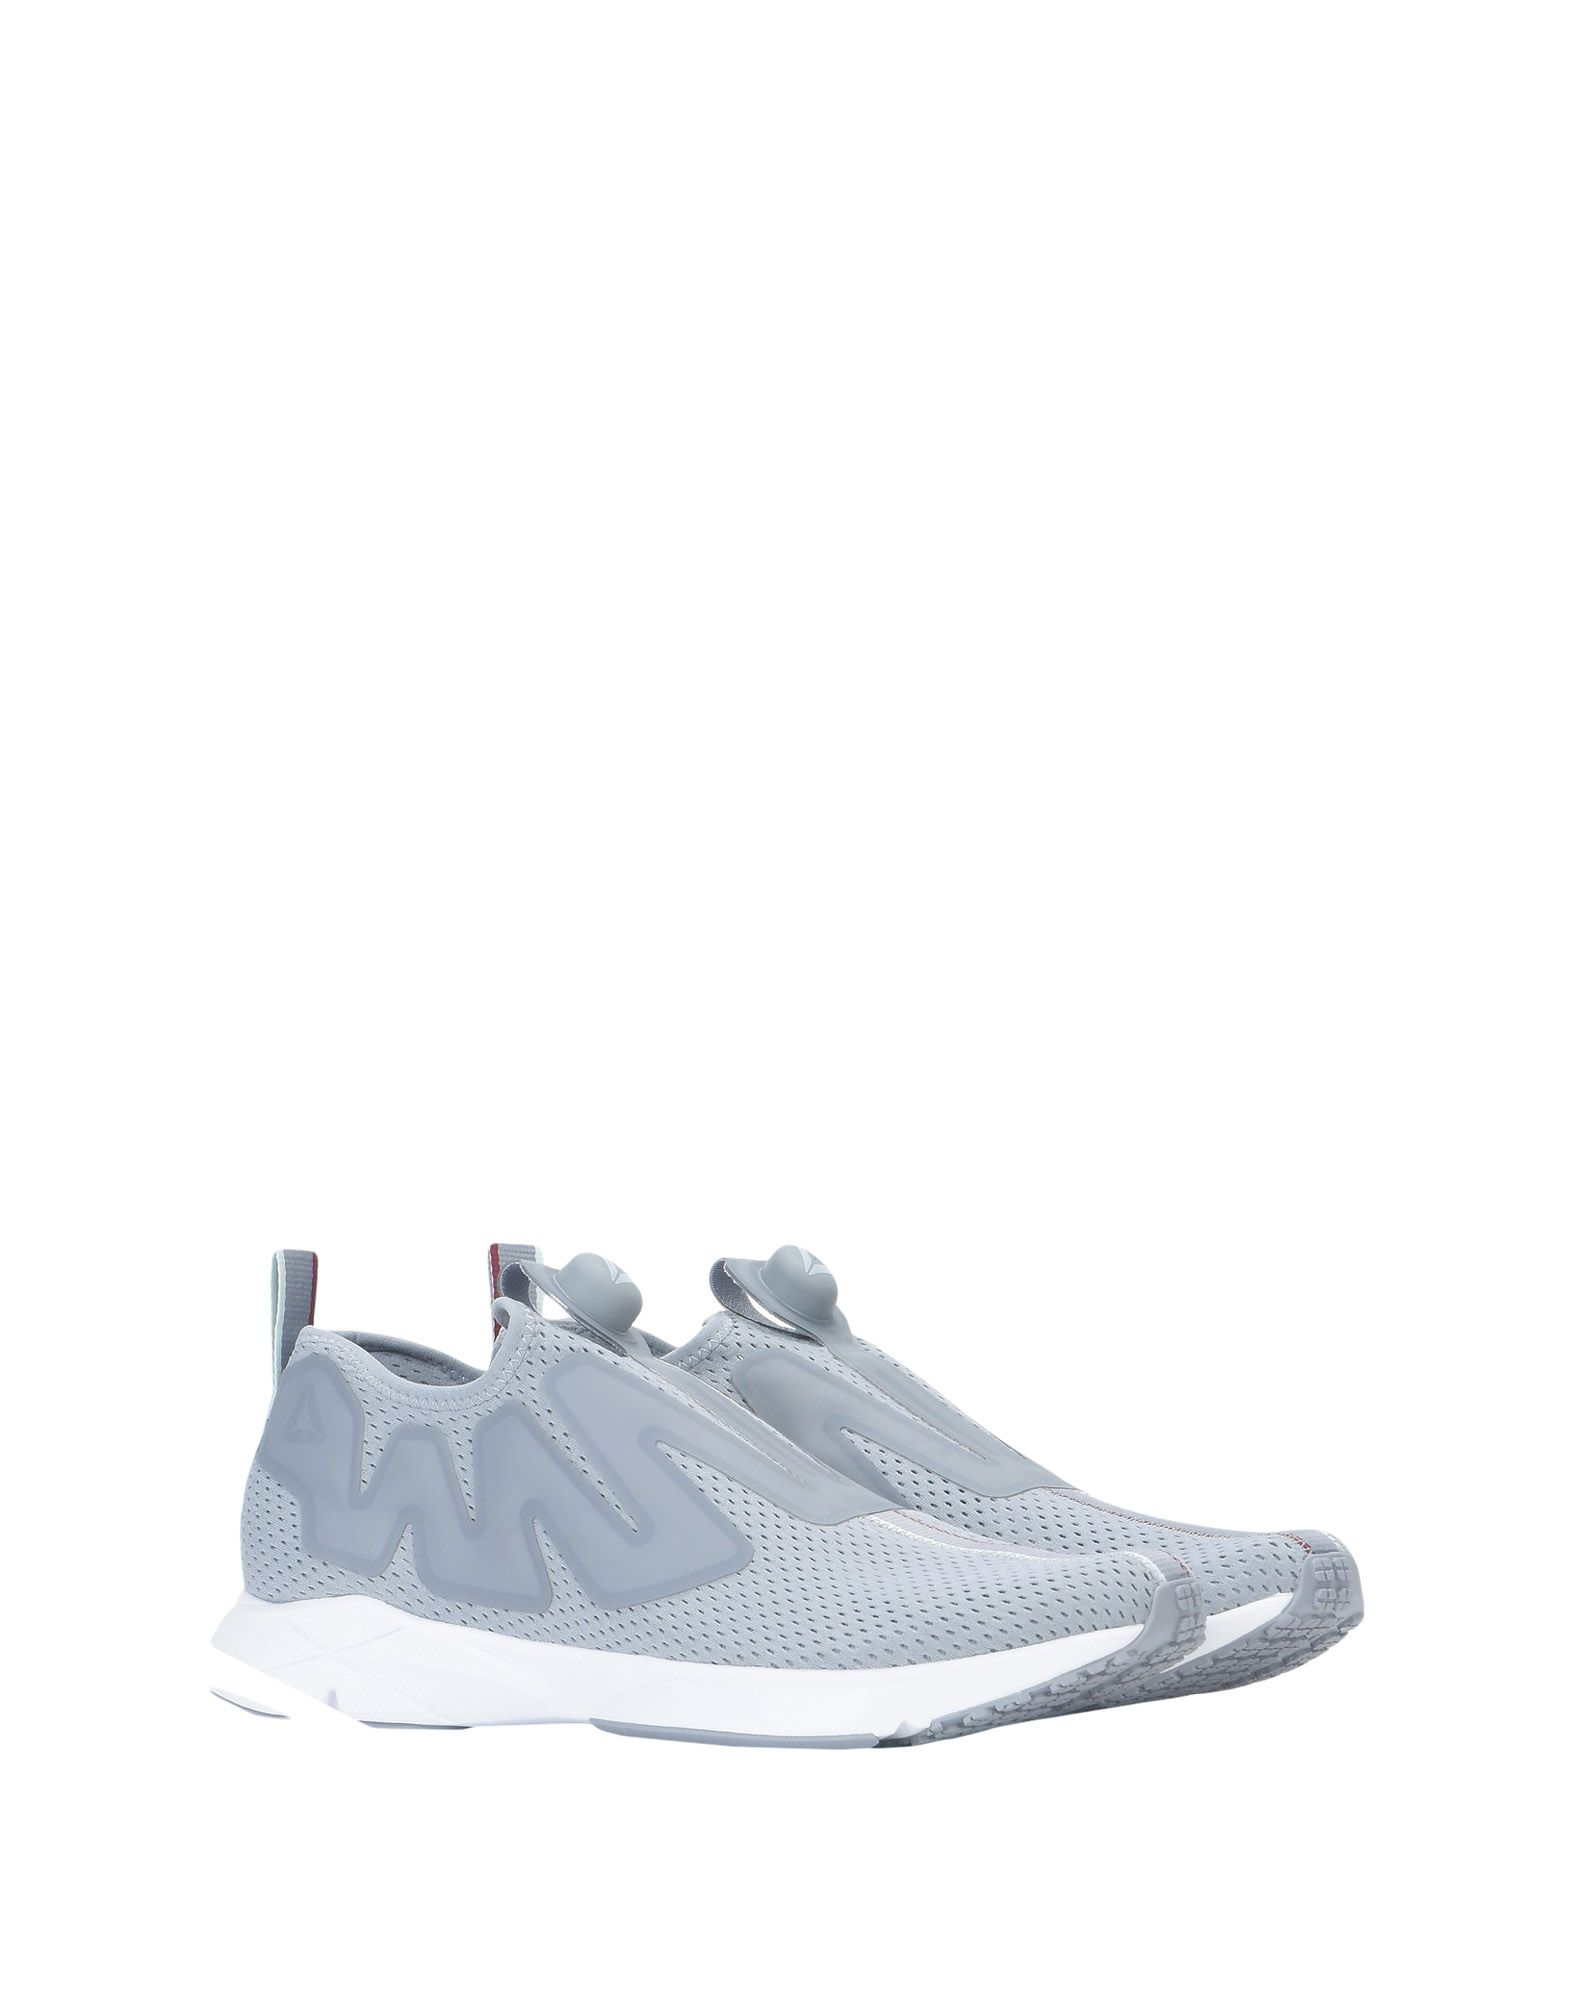 Reebok Sneakers Reebok Pump Supreme - Sneakers Reebok - Men Reebok Sneakers online on  Australia - 11495324DO b5cdc3